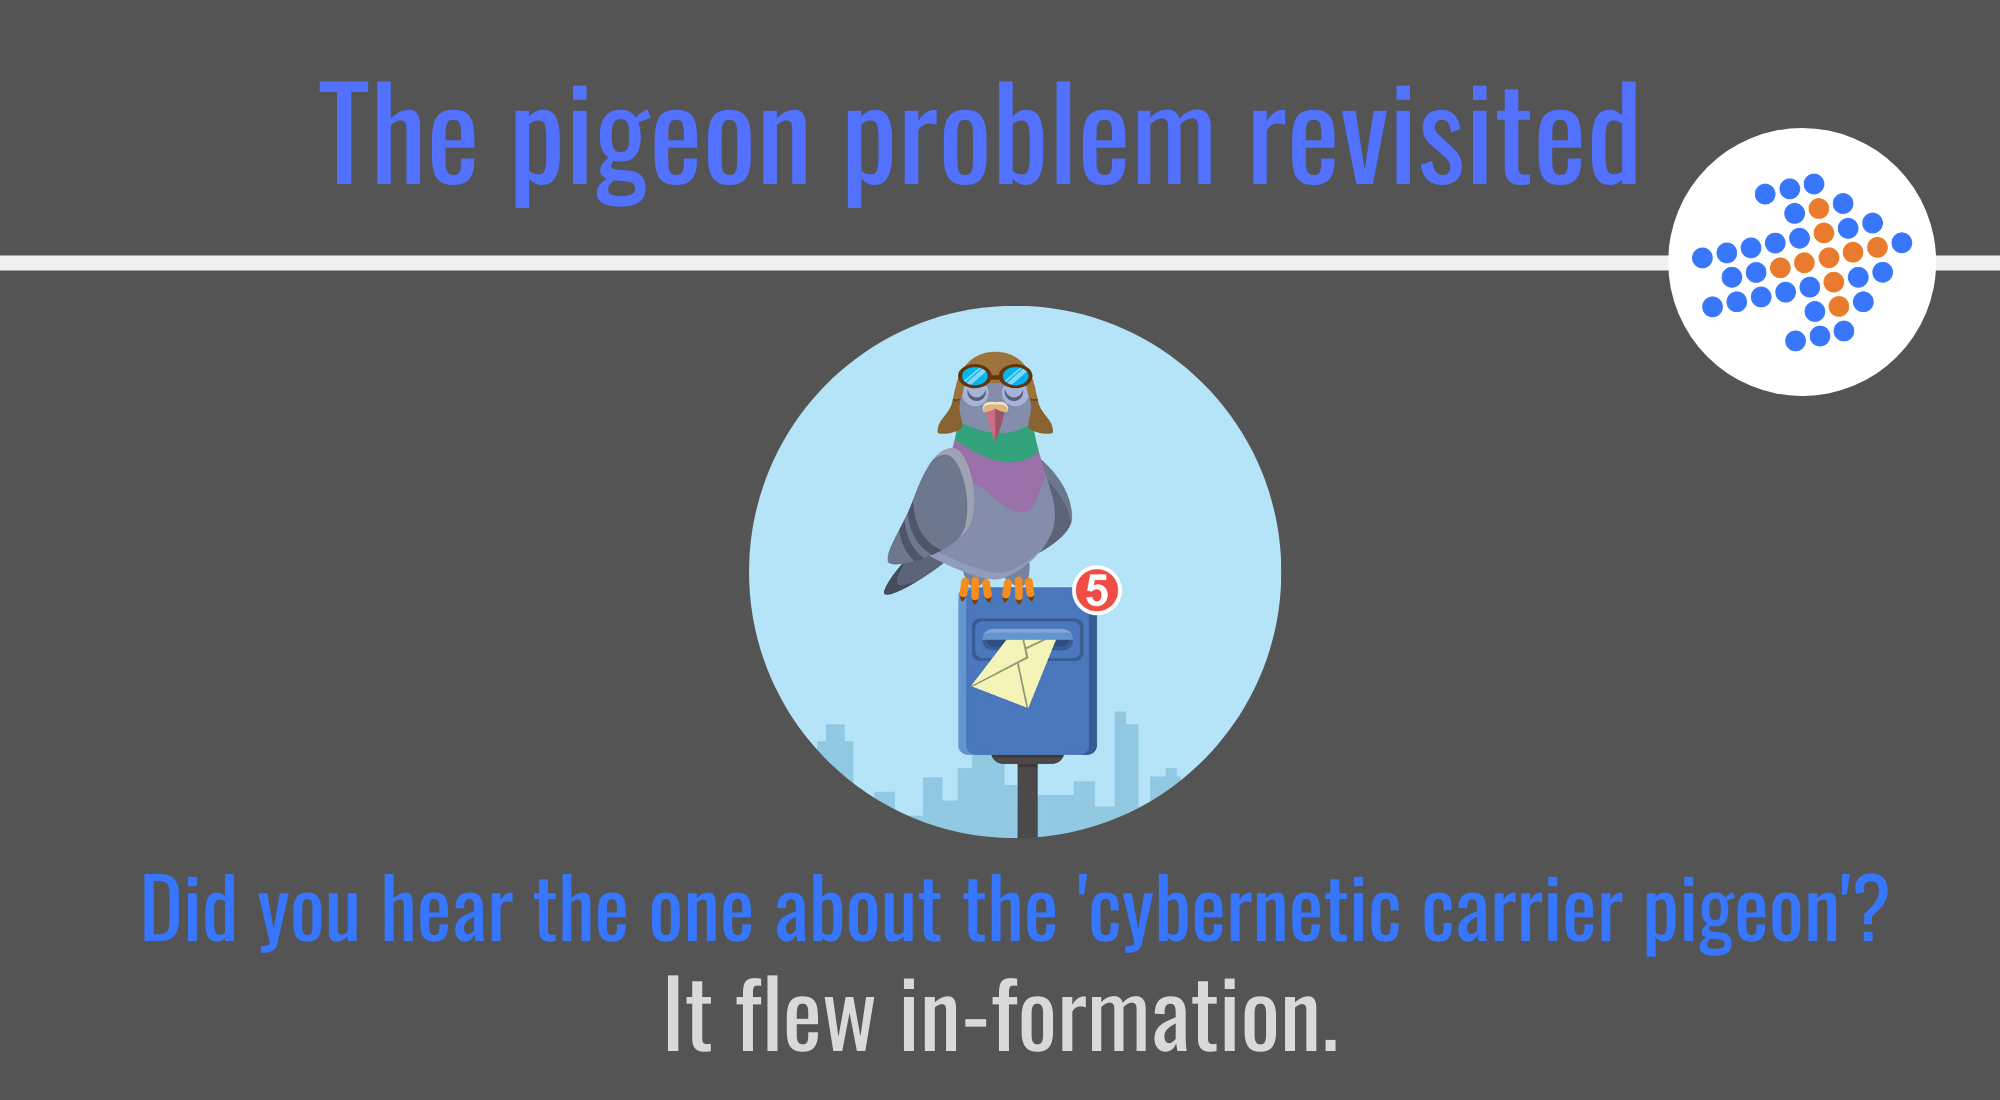 The pigeon problem revisited